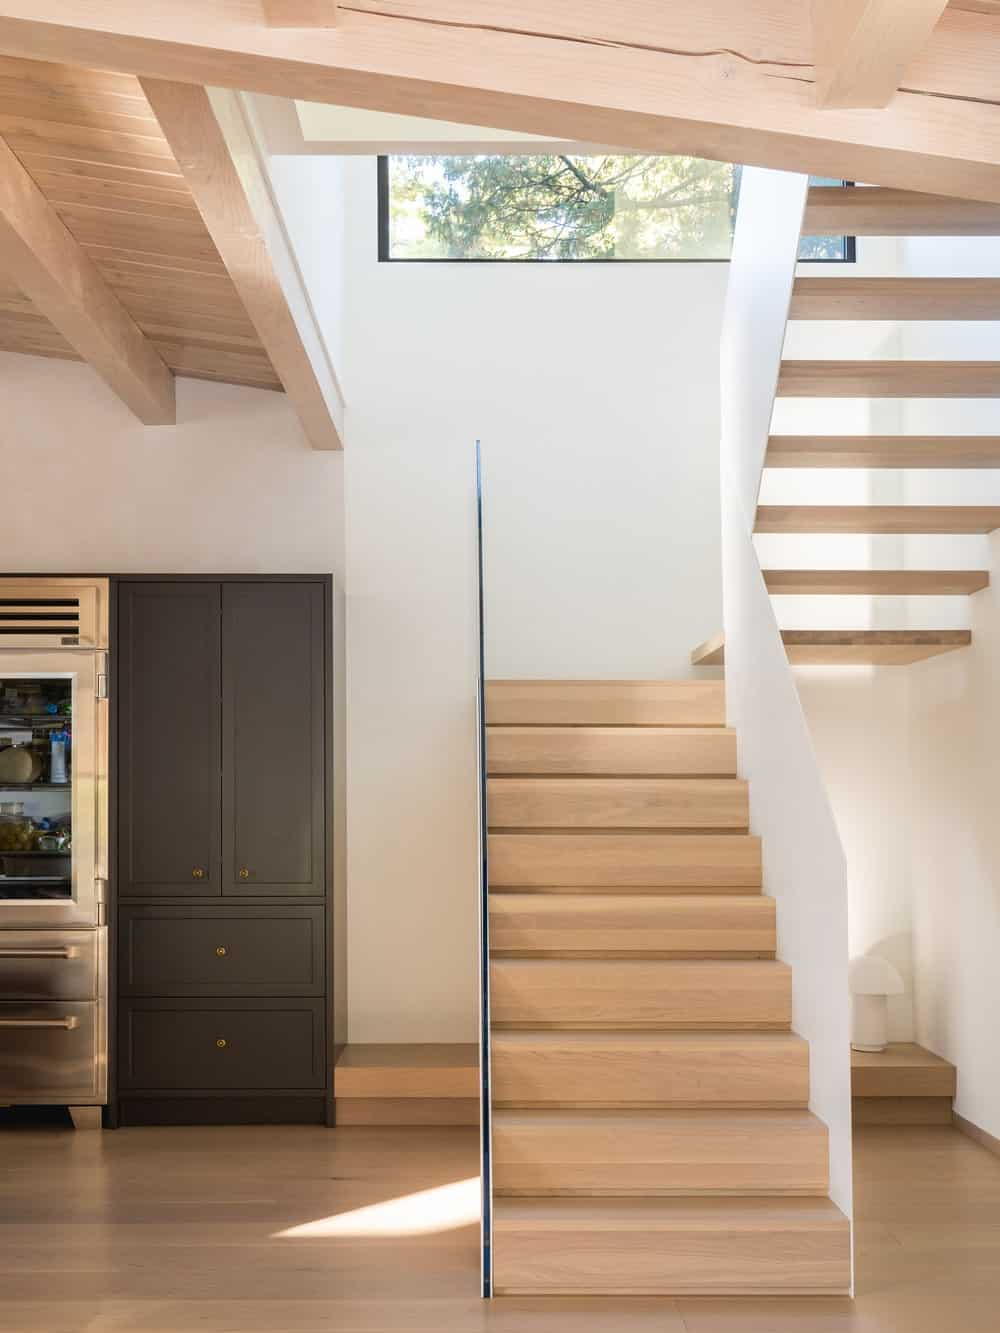 This is a closer look at the staircase that has light wooden steps to match the hardwood flooring contrasted by the dark tone of the kitchen cabinetry.